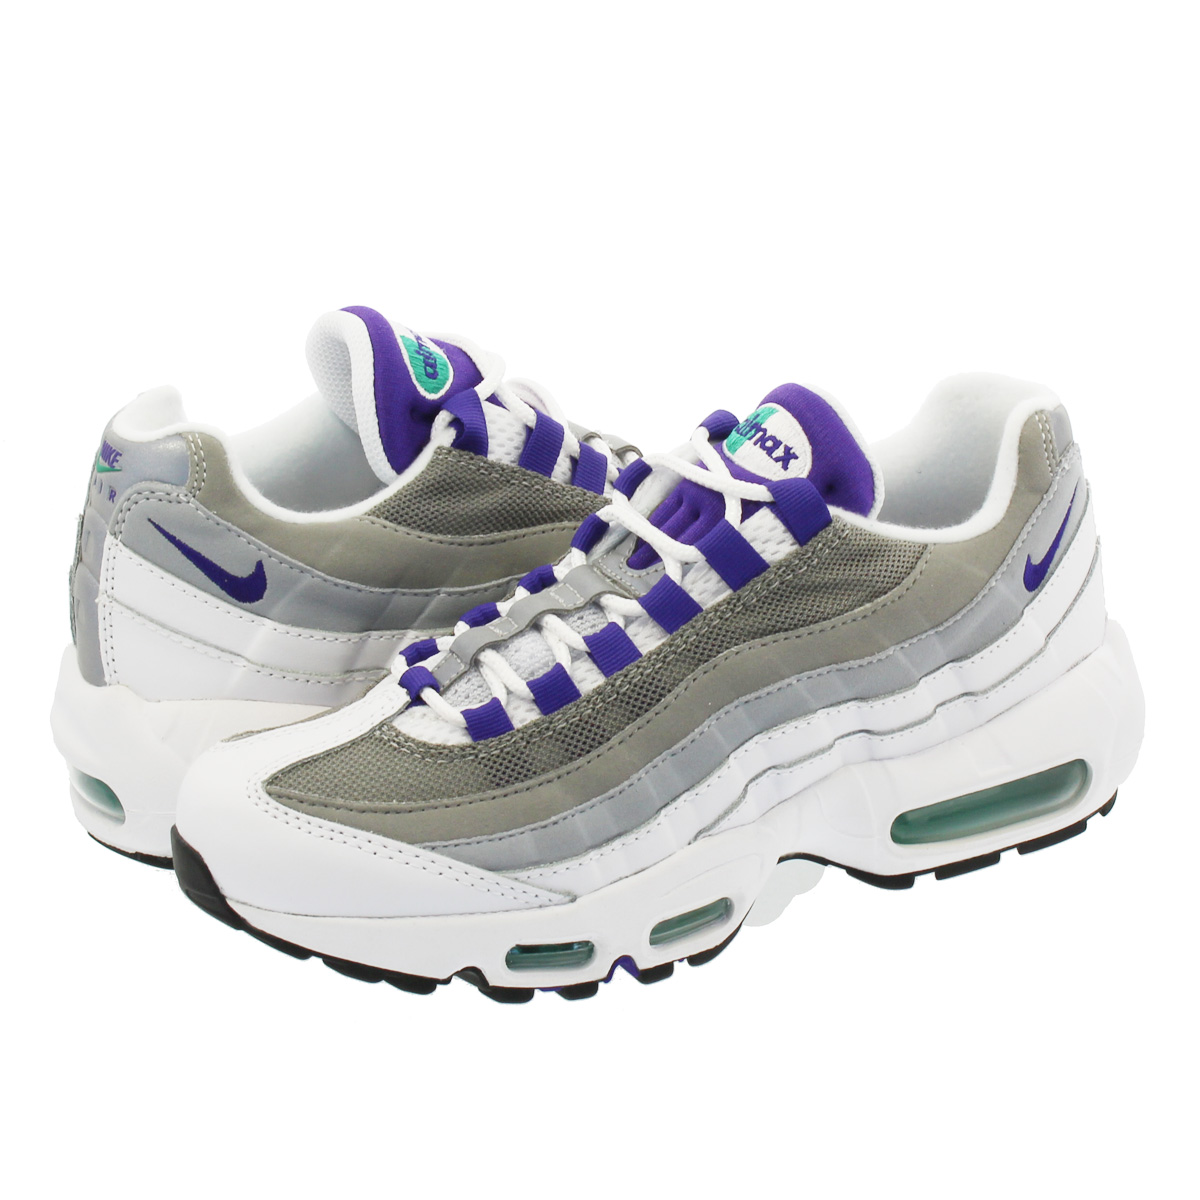 promo code 9354a fc2dc NIKE WMNS AIR MAX 95 Nike women Air Max 95 WHITE COURT PURPLE EMERALD GREEN WOLF  GREY